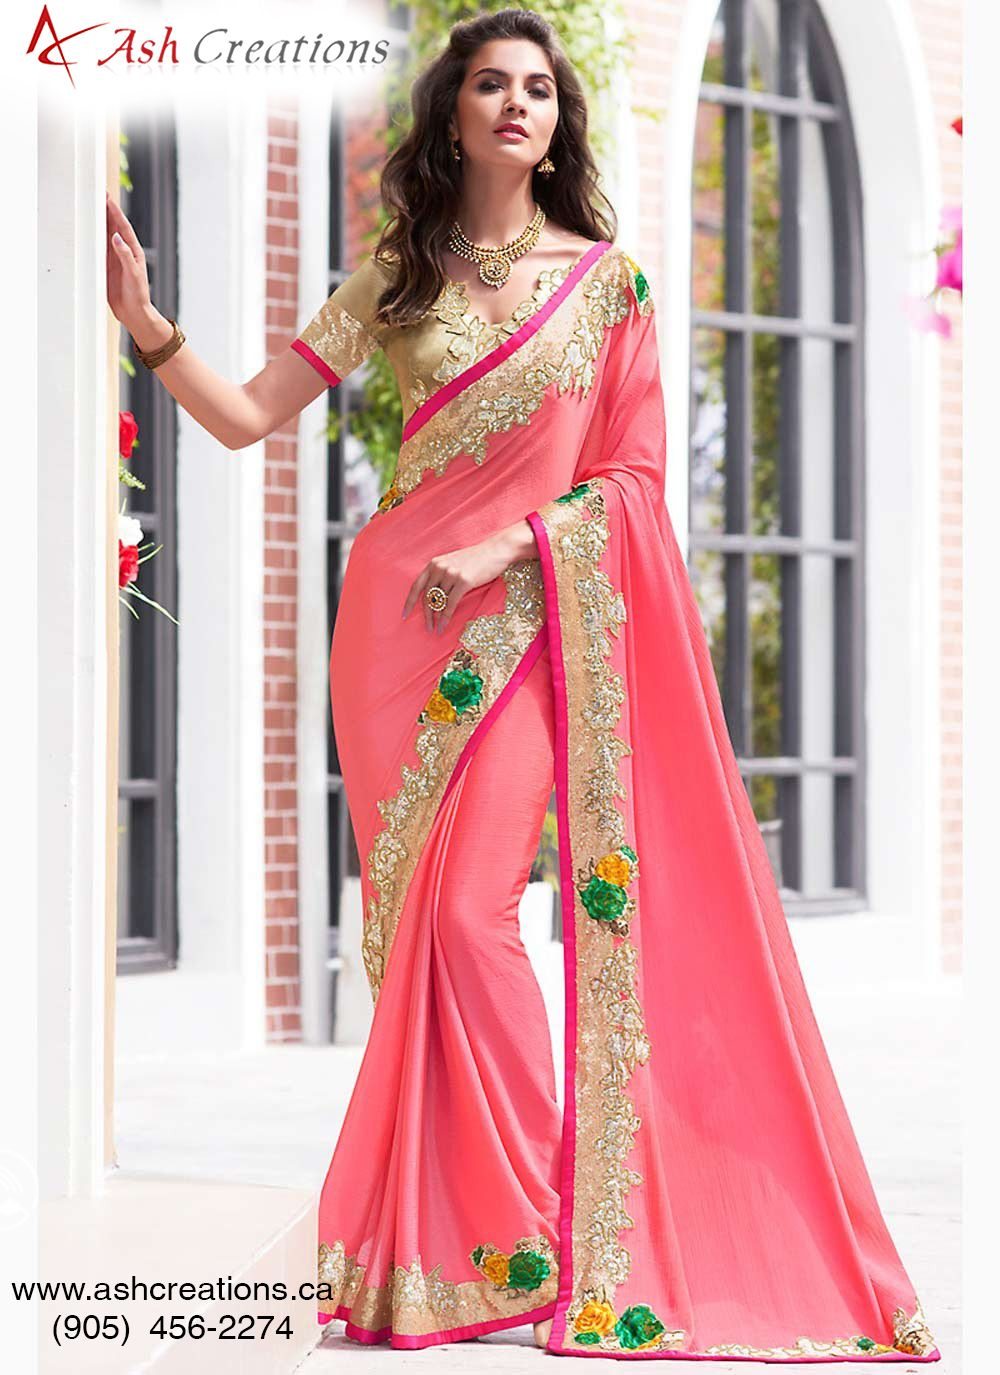 006829326c Shop Indian bridal wears, party wears clothing at affordable rates in  Mississauga. We offer a wide range of Indian clothing and jewelry in  Toronto and ...